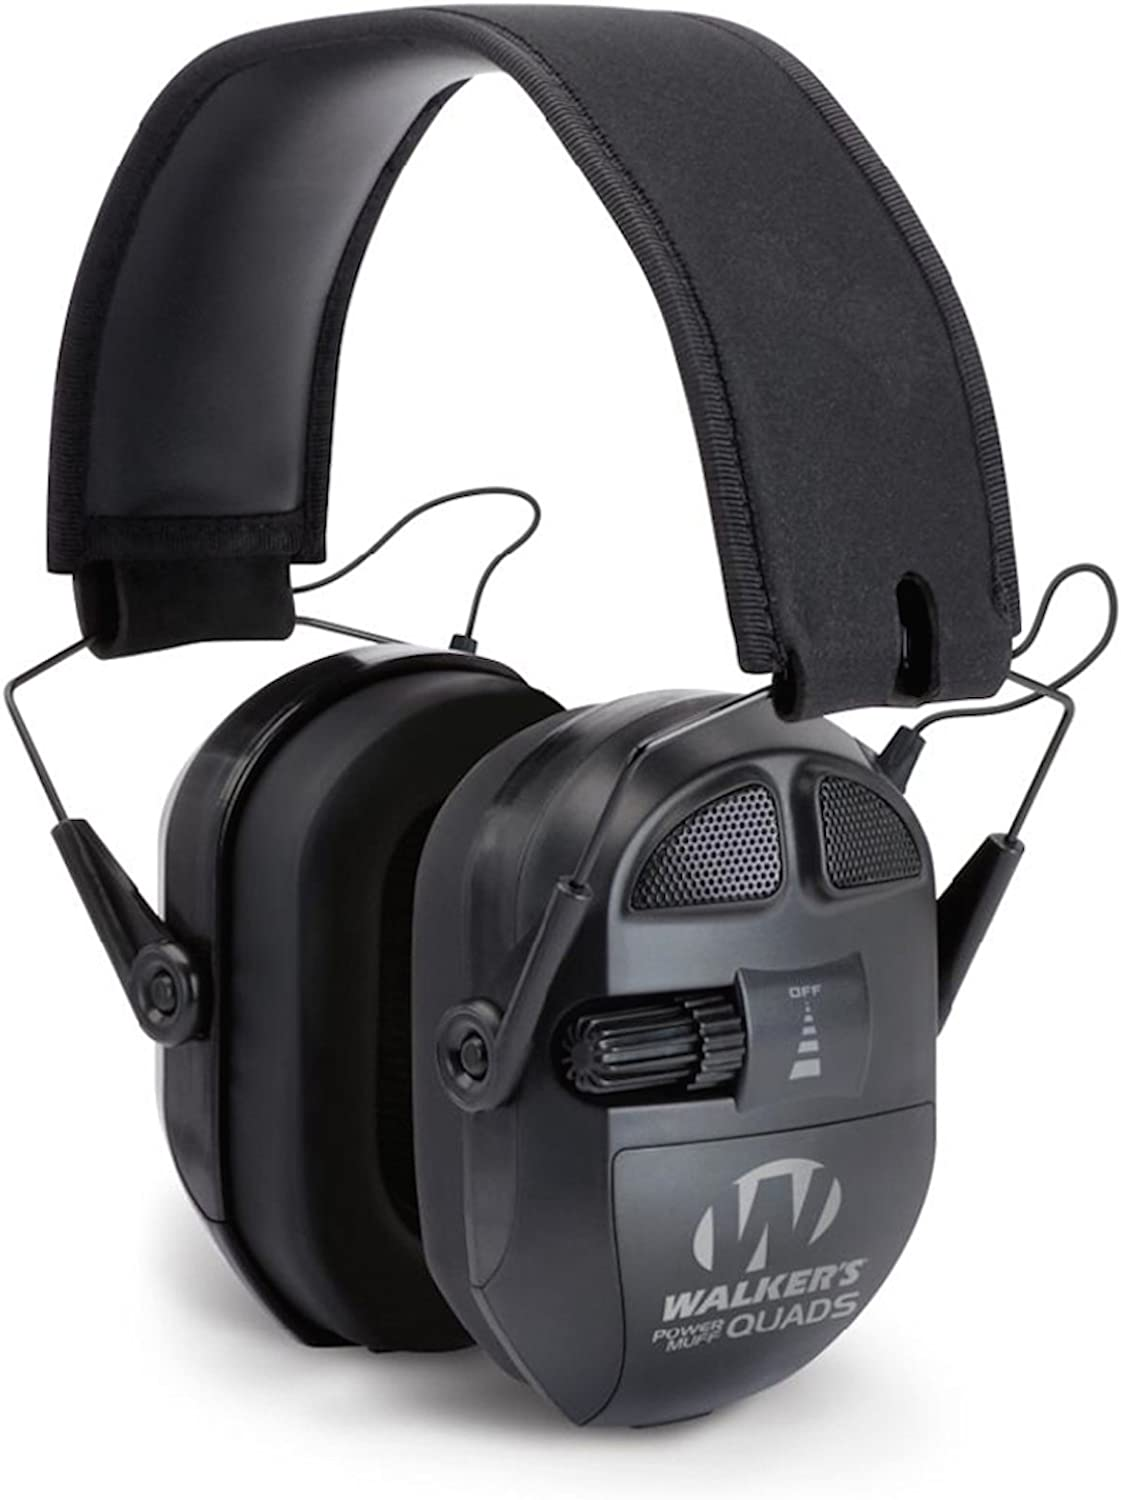 Walker's Game Ear 2021 autumn and winter new Ultimate Power AFT Quads with Reservation Electric Muff